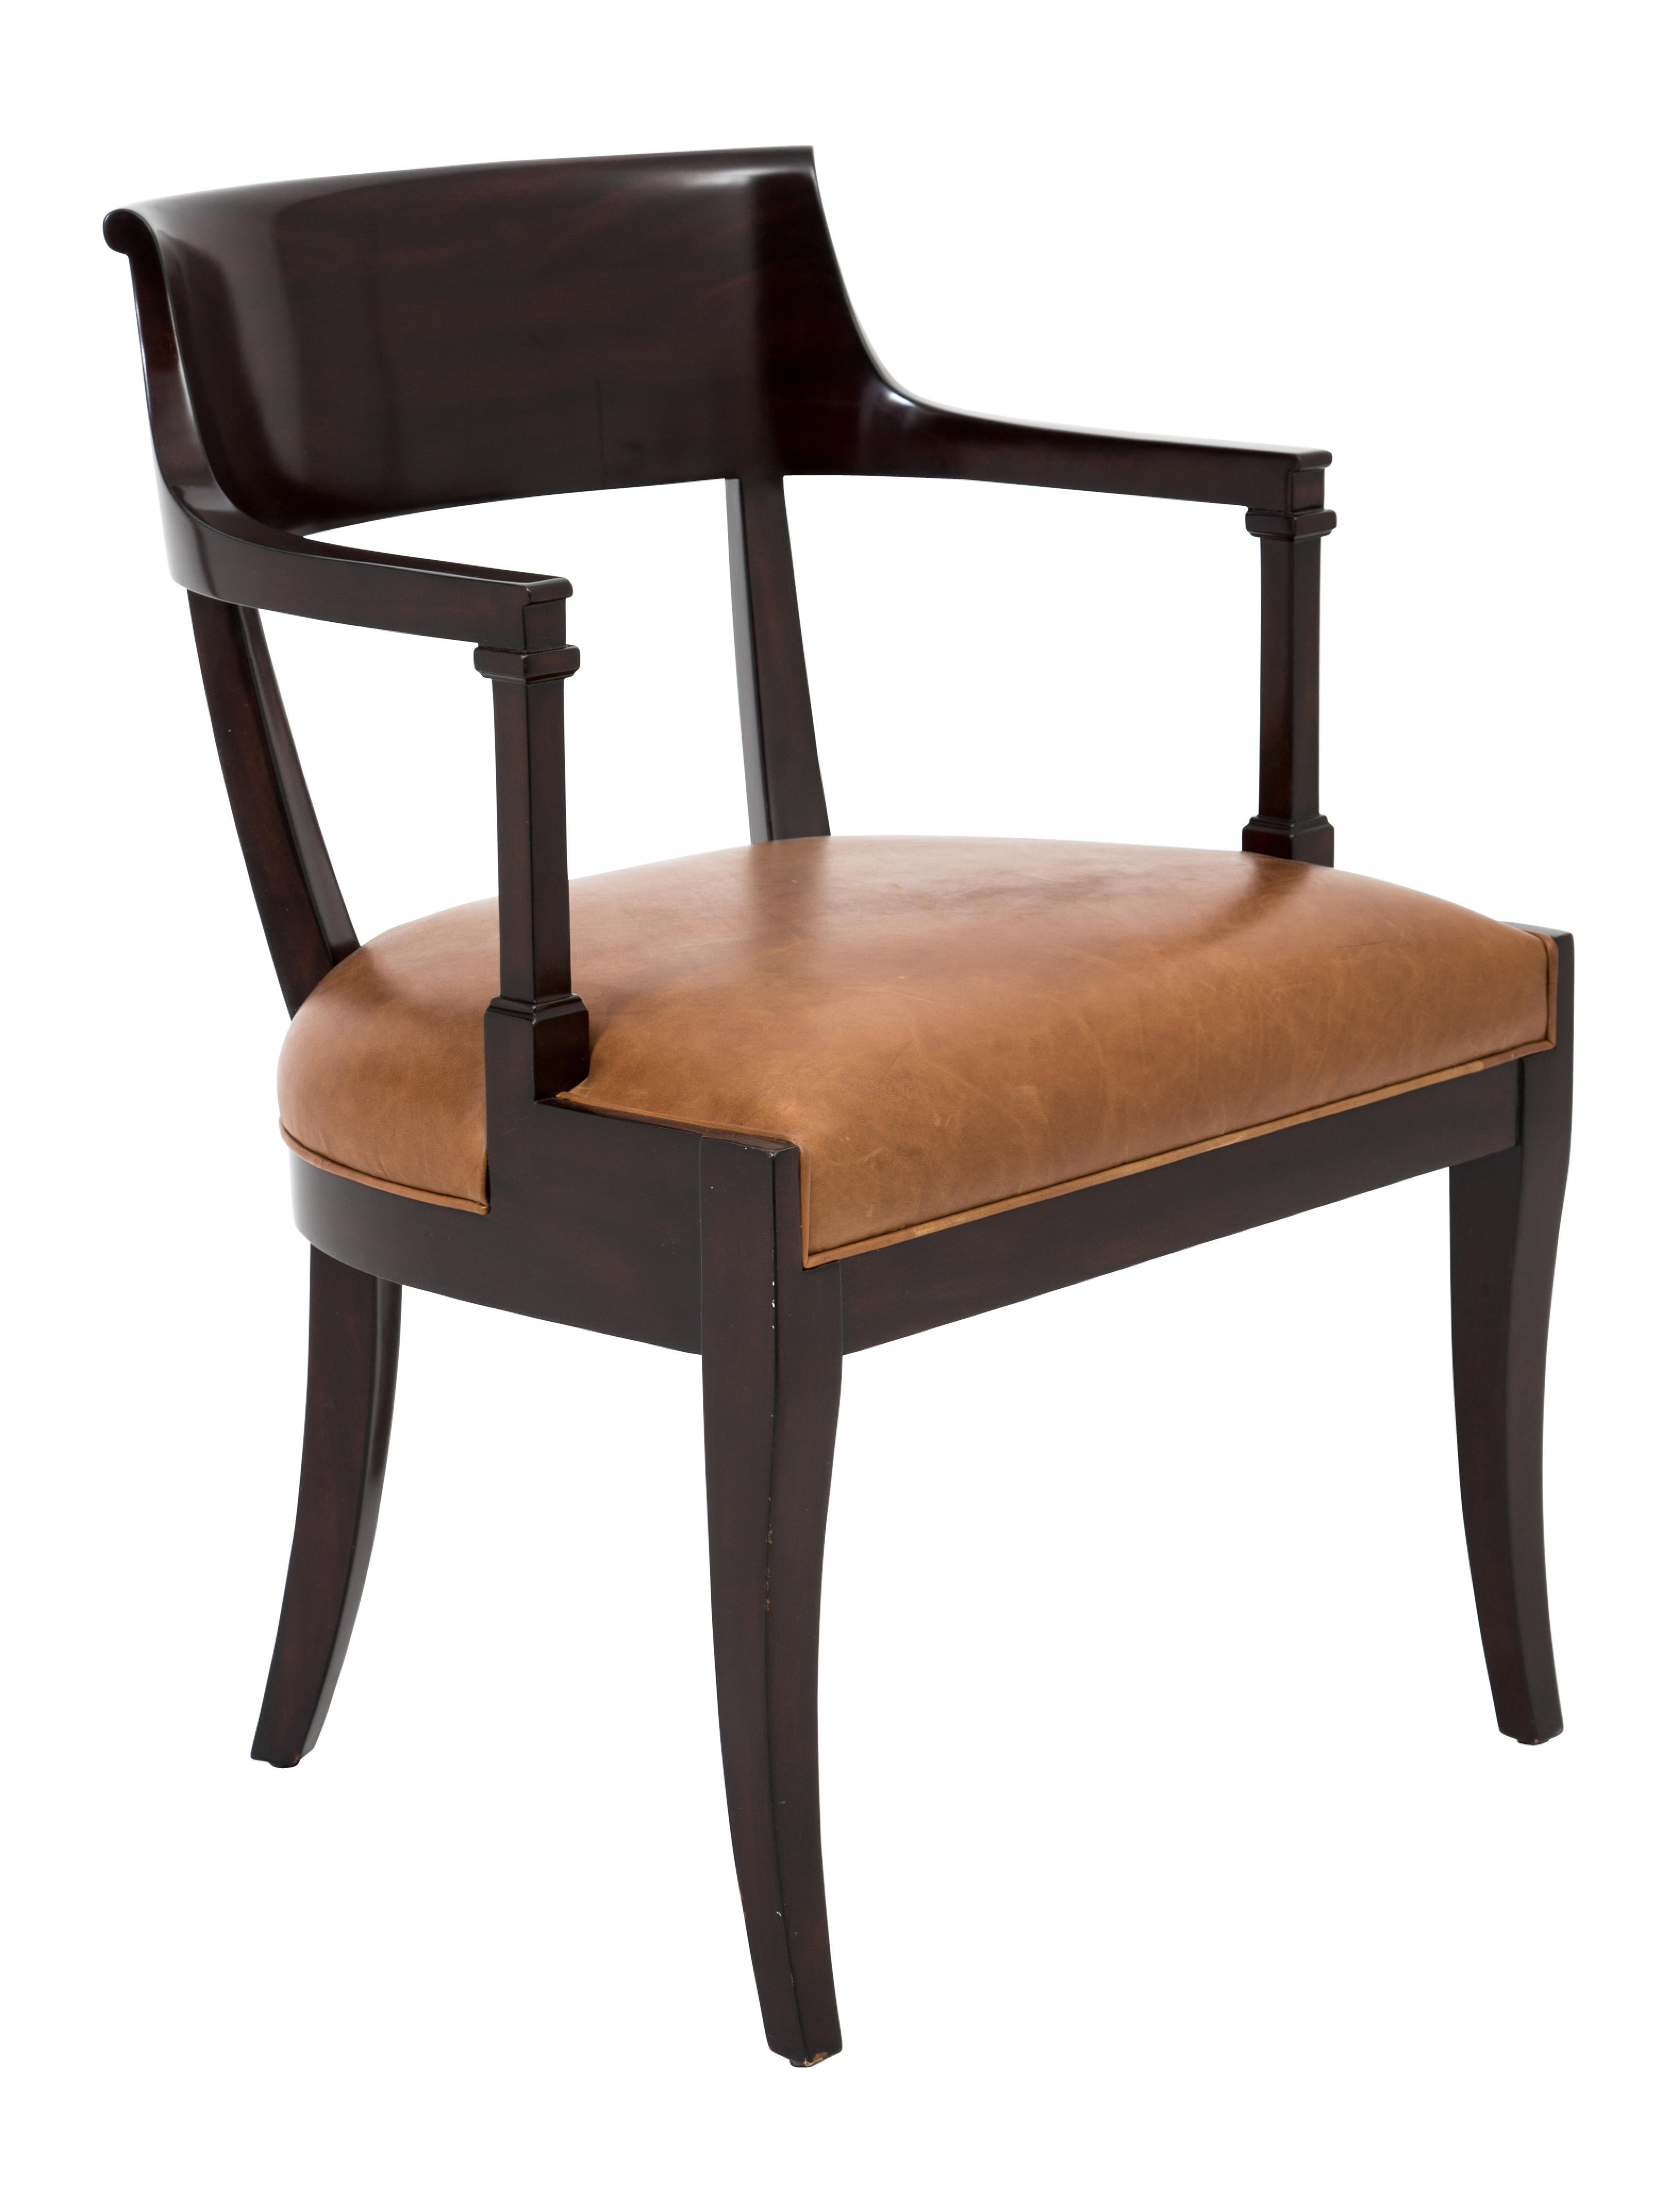 Chair Theodore Alexander Leather Upholstered Armchair